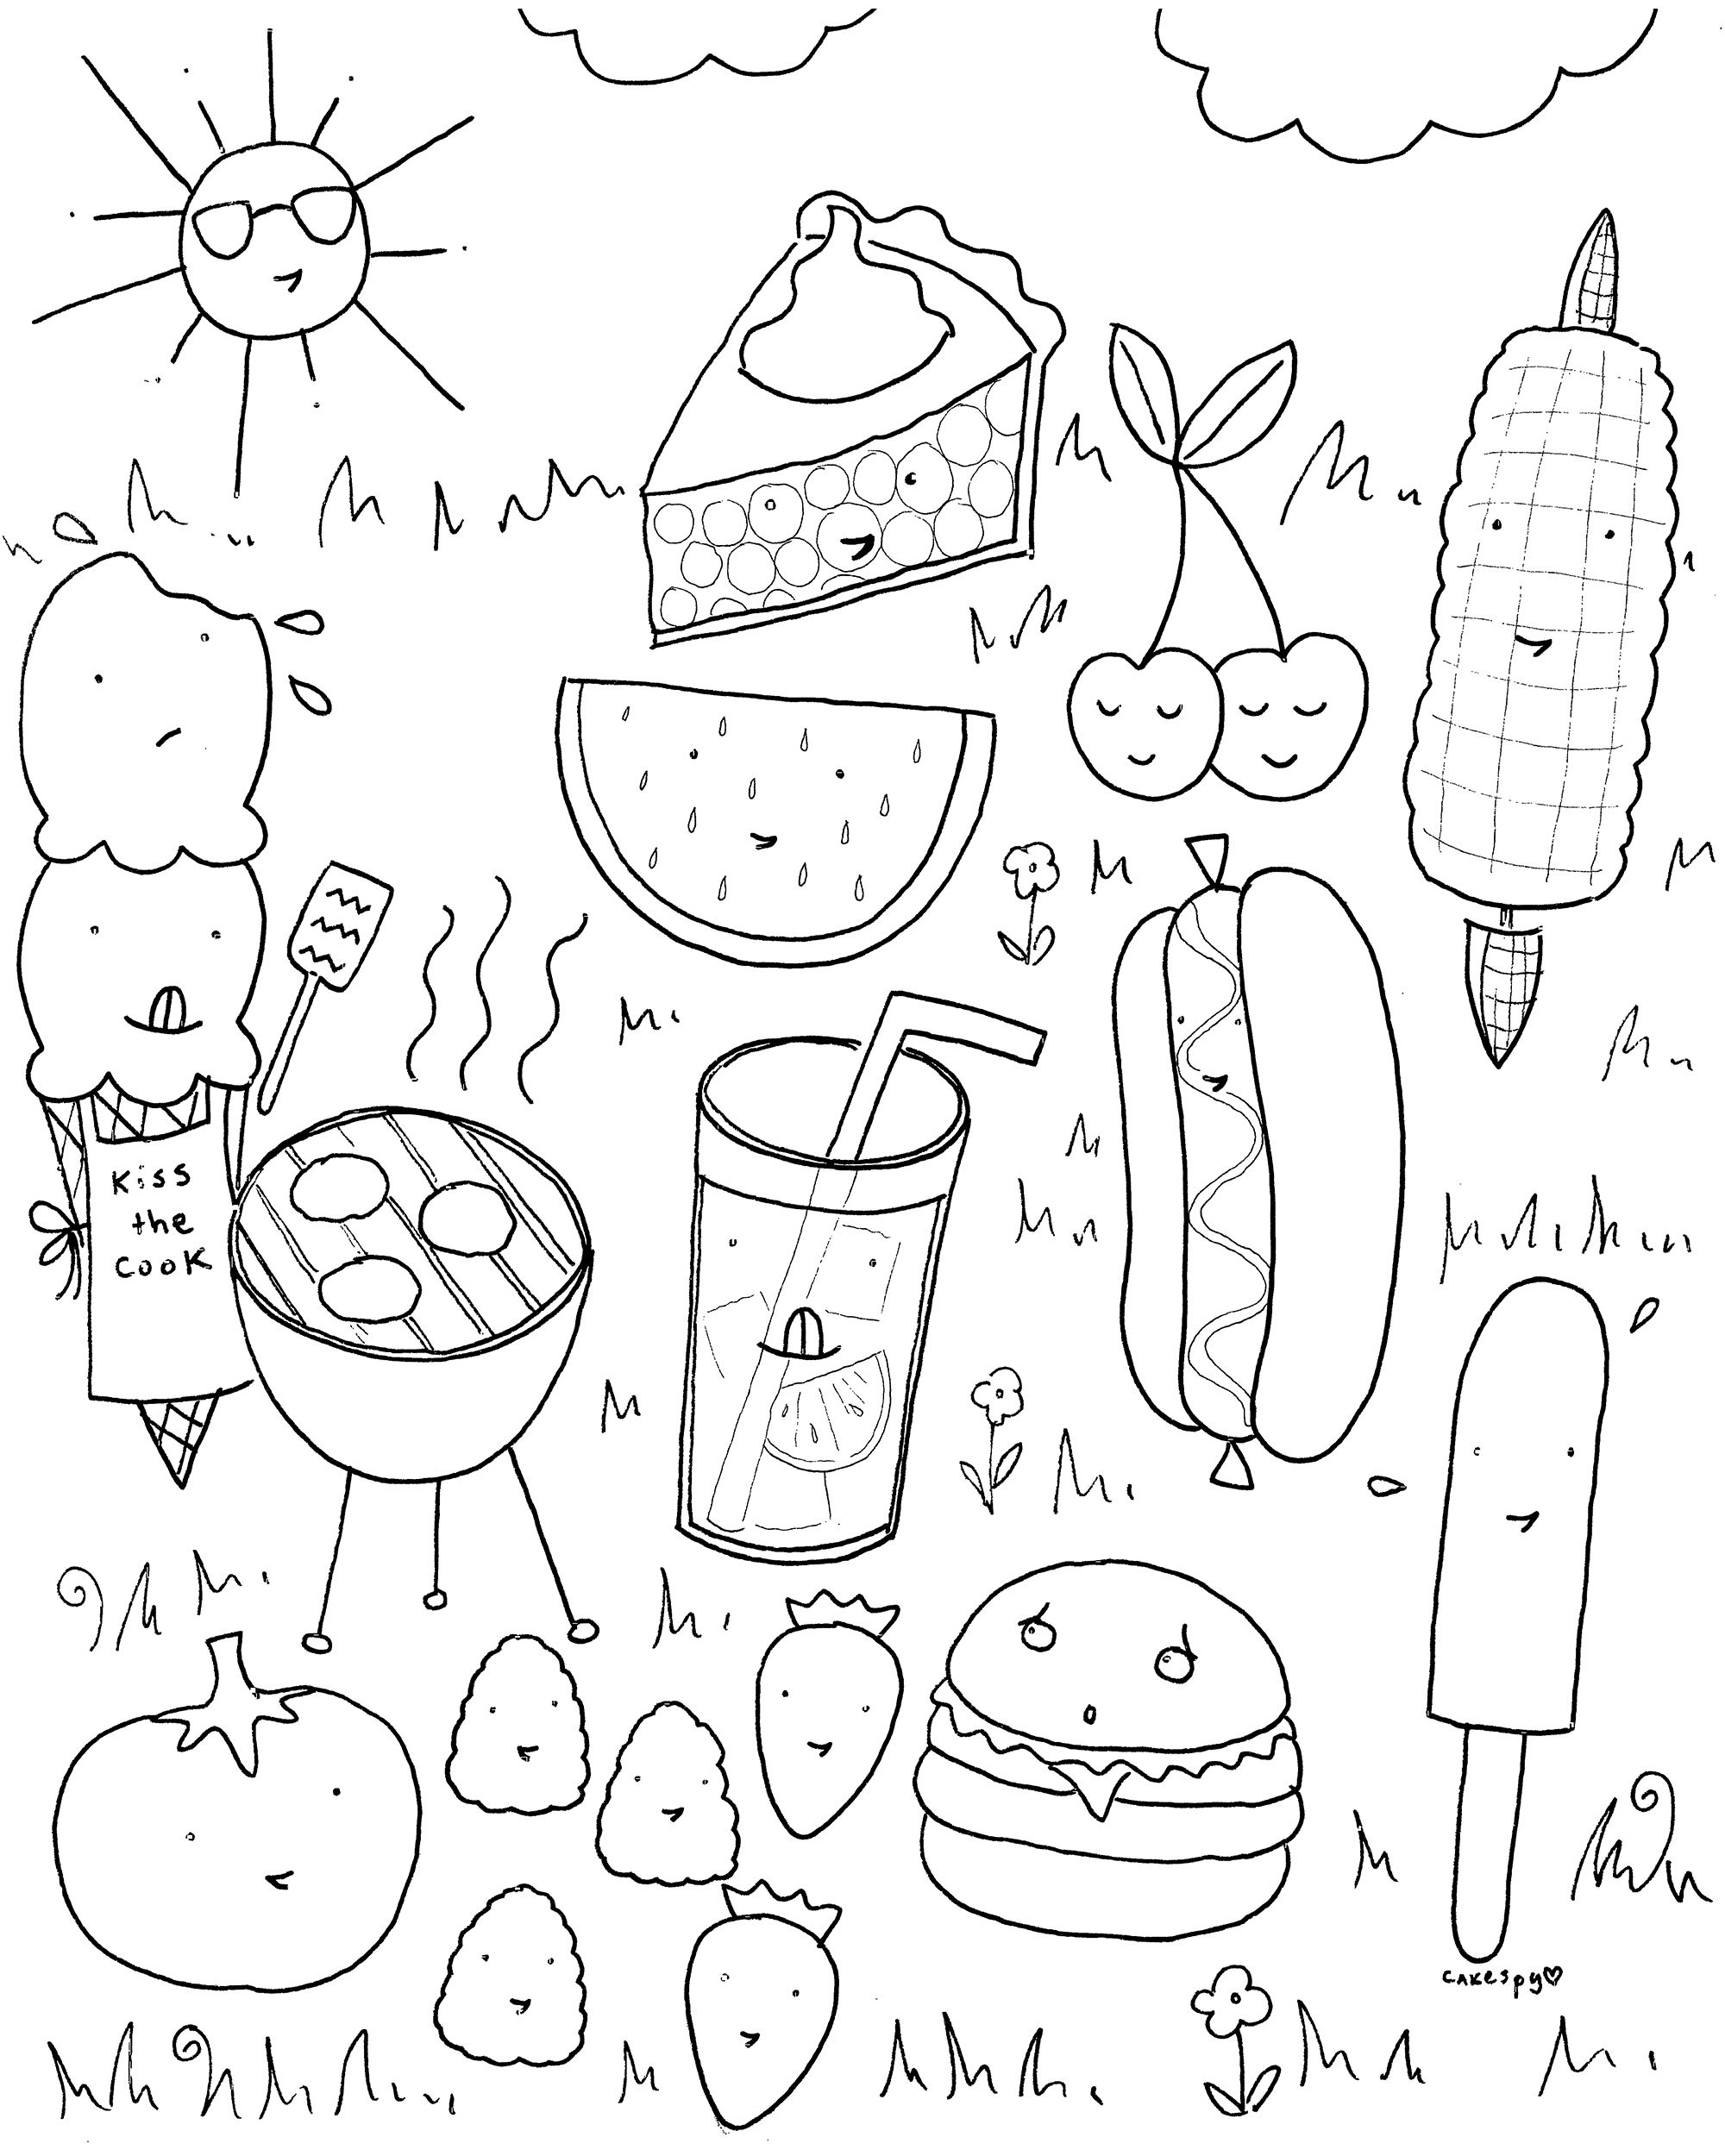 FREE Downloadable Summer Fun Coloring Book Pages | Ideen für Kinder ...